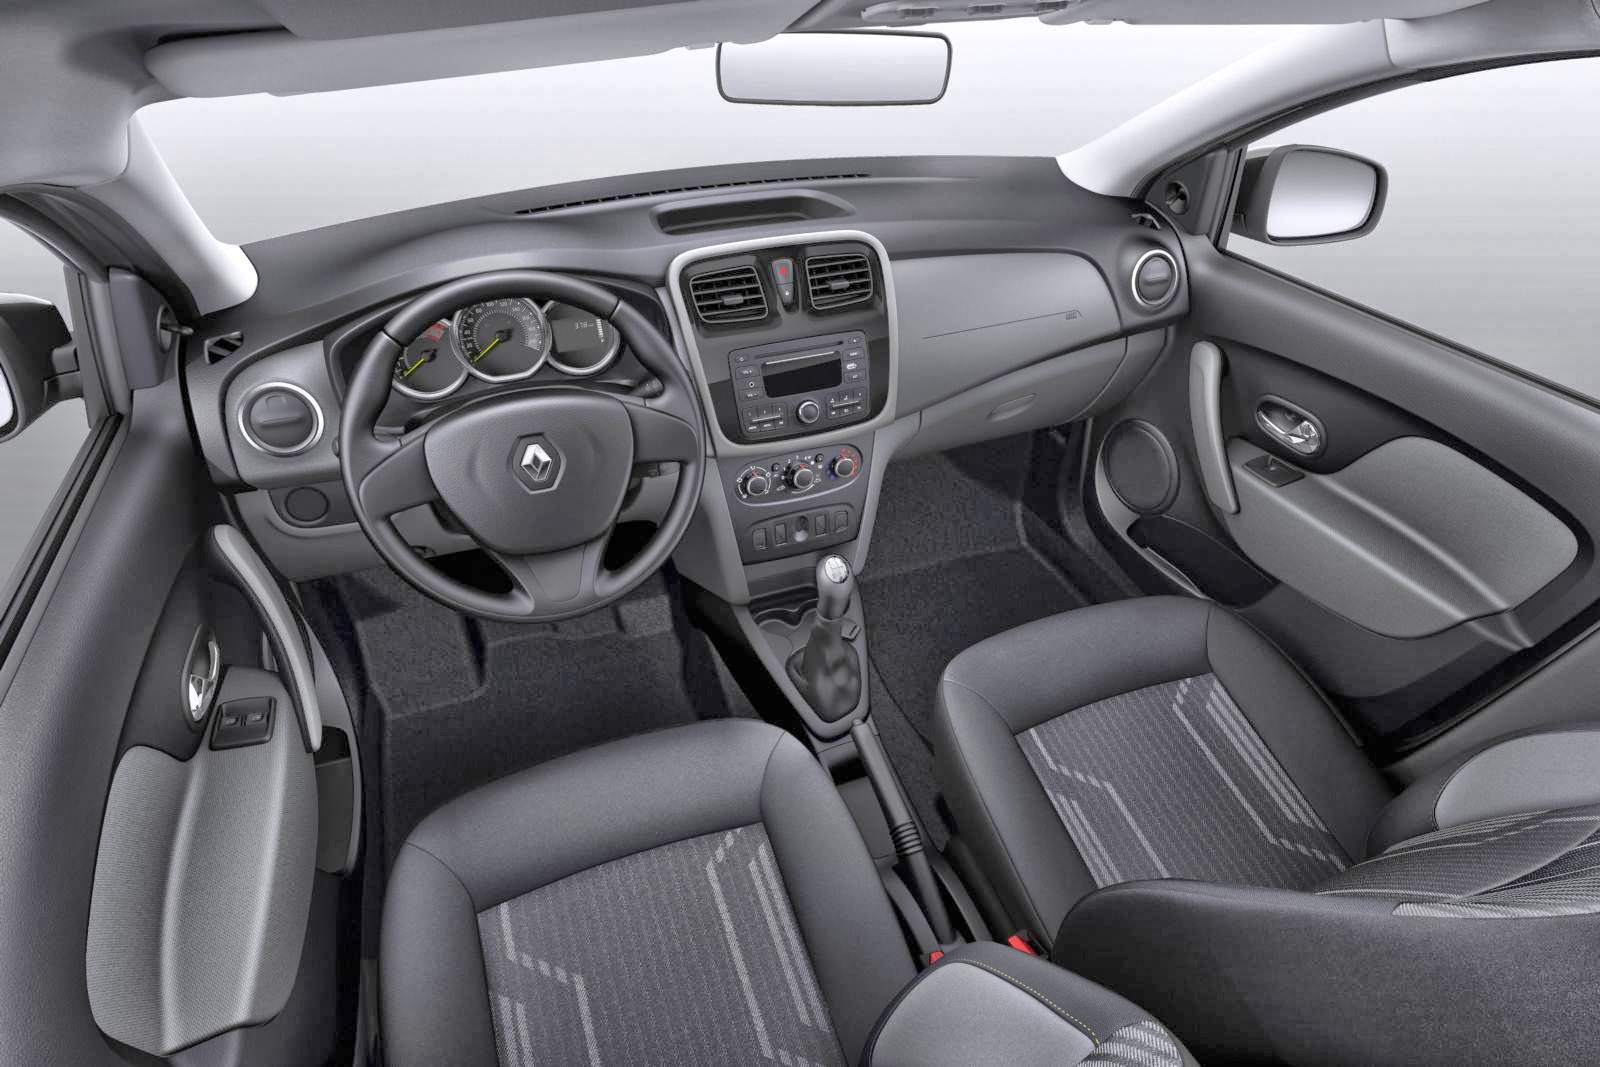 carro Logan Renault 2014 - interior